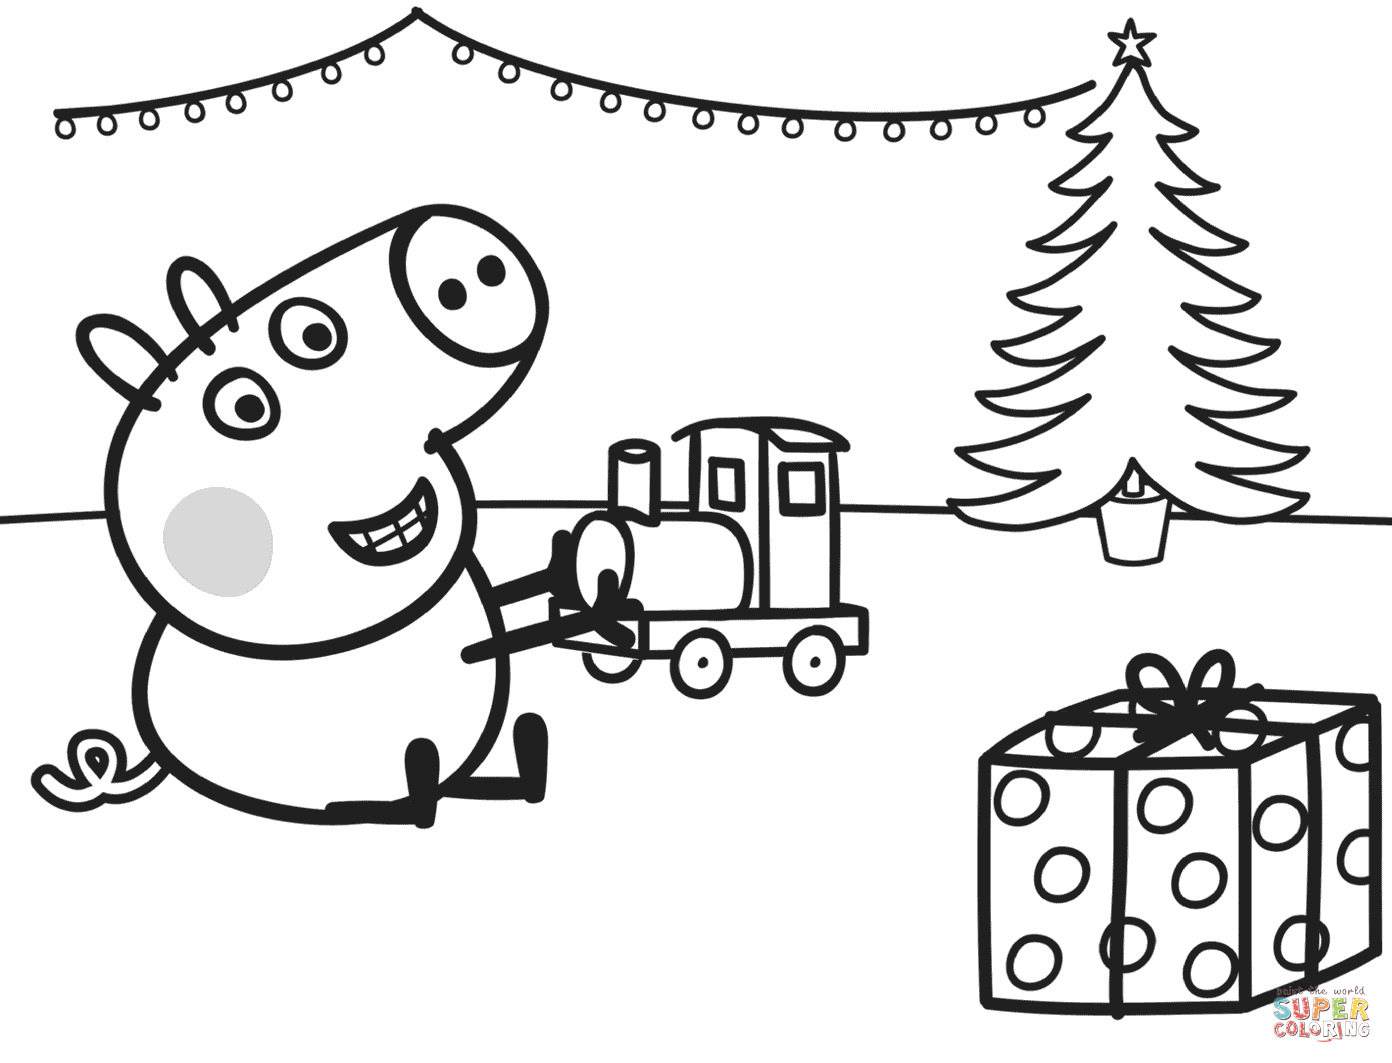 Peppa Pig Coloring Pages Coloring Rocks Peppa Pig Coloring Pages Peppa Pig Colouring Train Coloring Pages